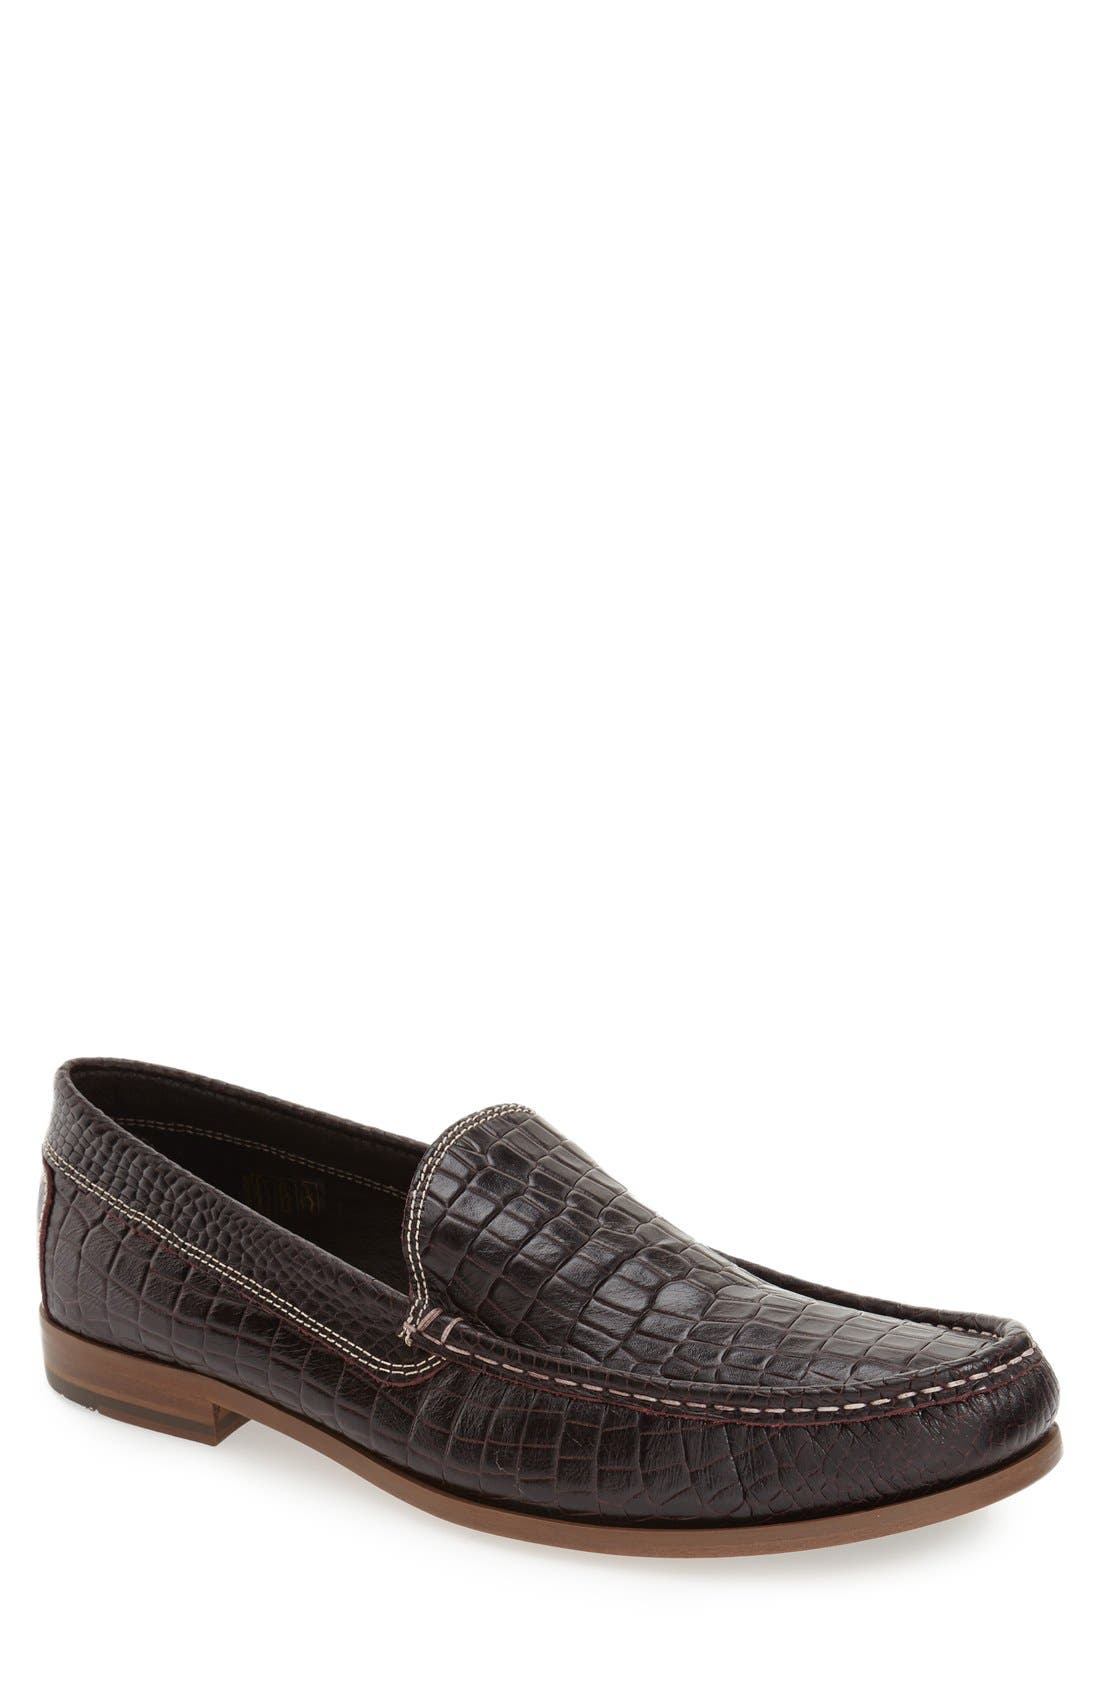 Donald J Pliner 'Nate' Loafer,                             Main thumbnail 5, color,